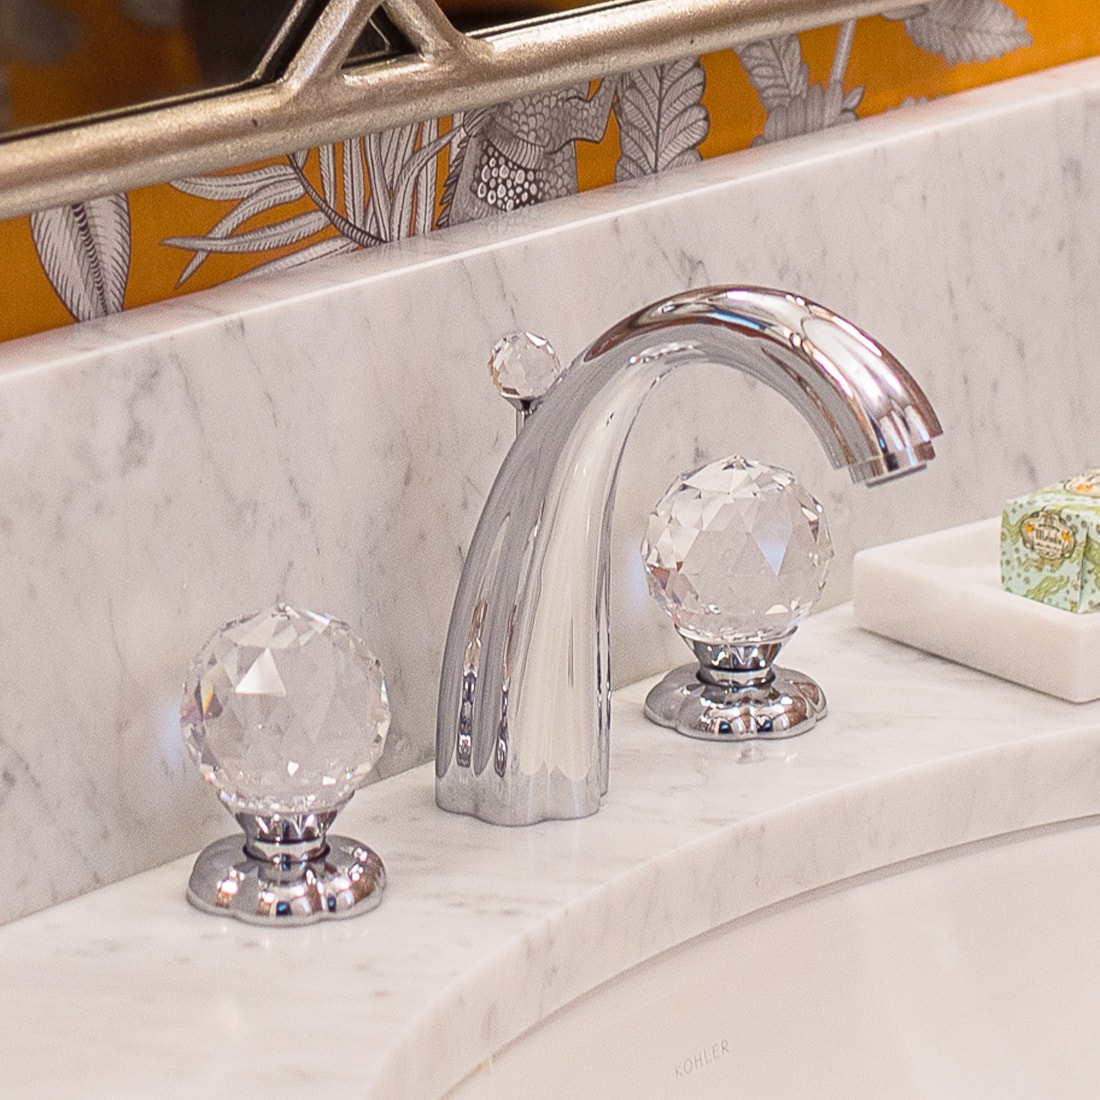 Crystal ball faucet handles in renovated bath